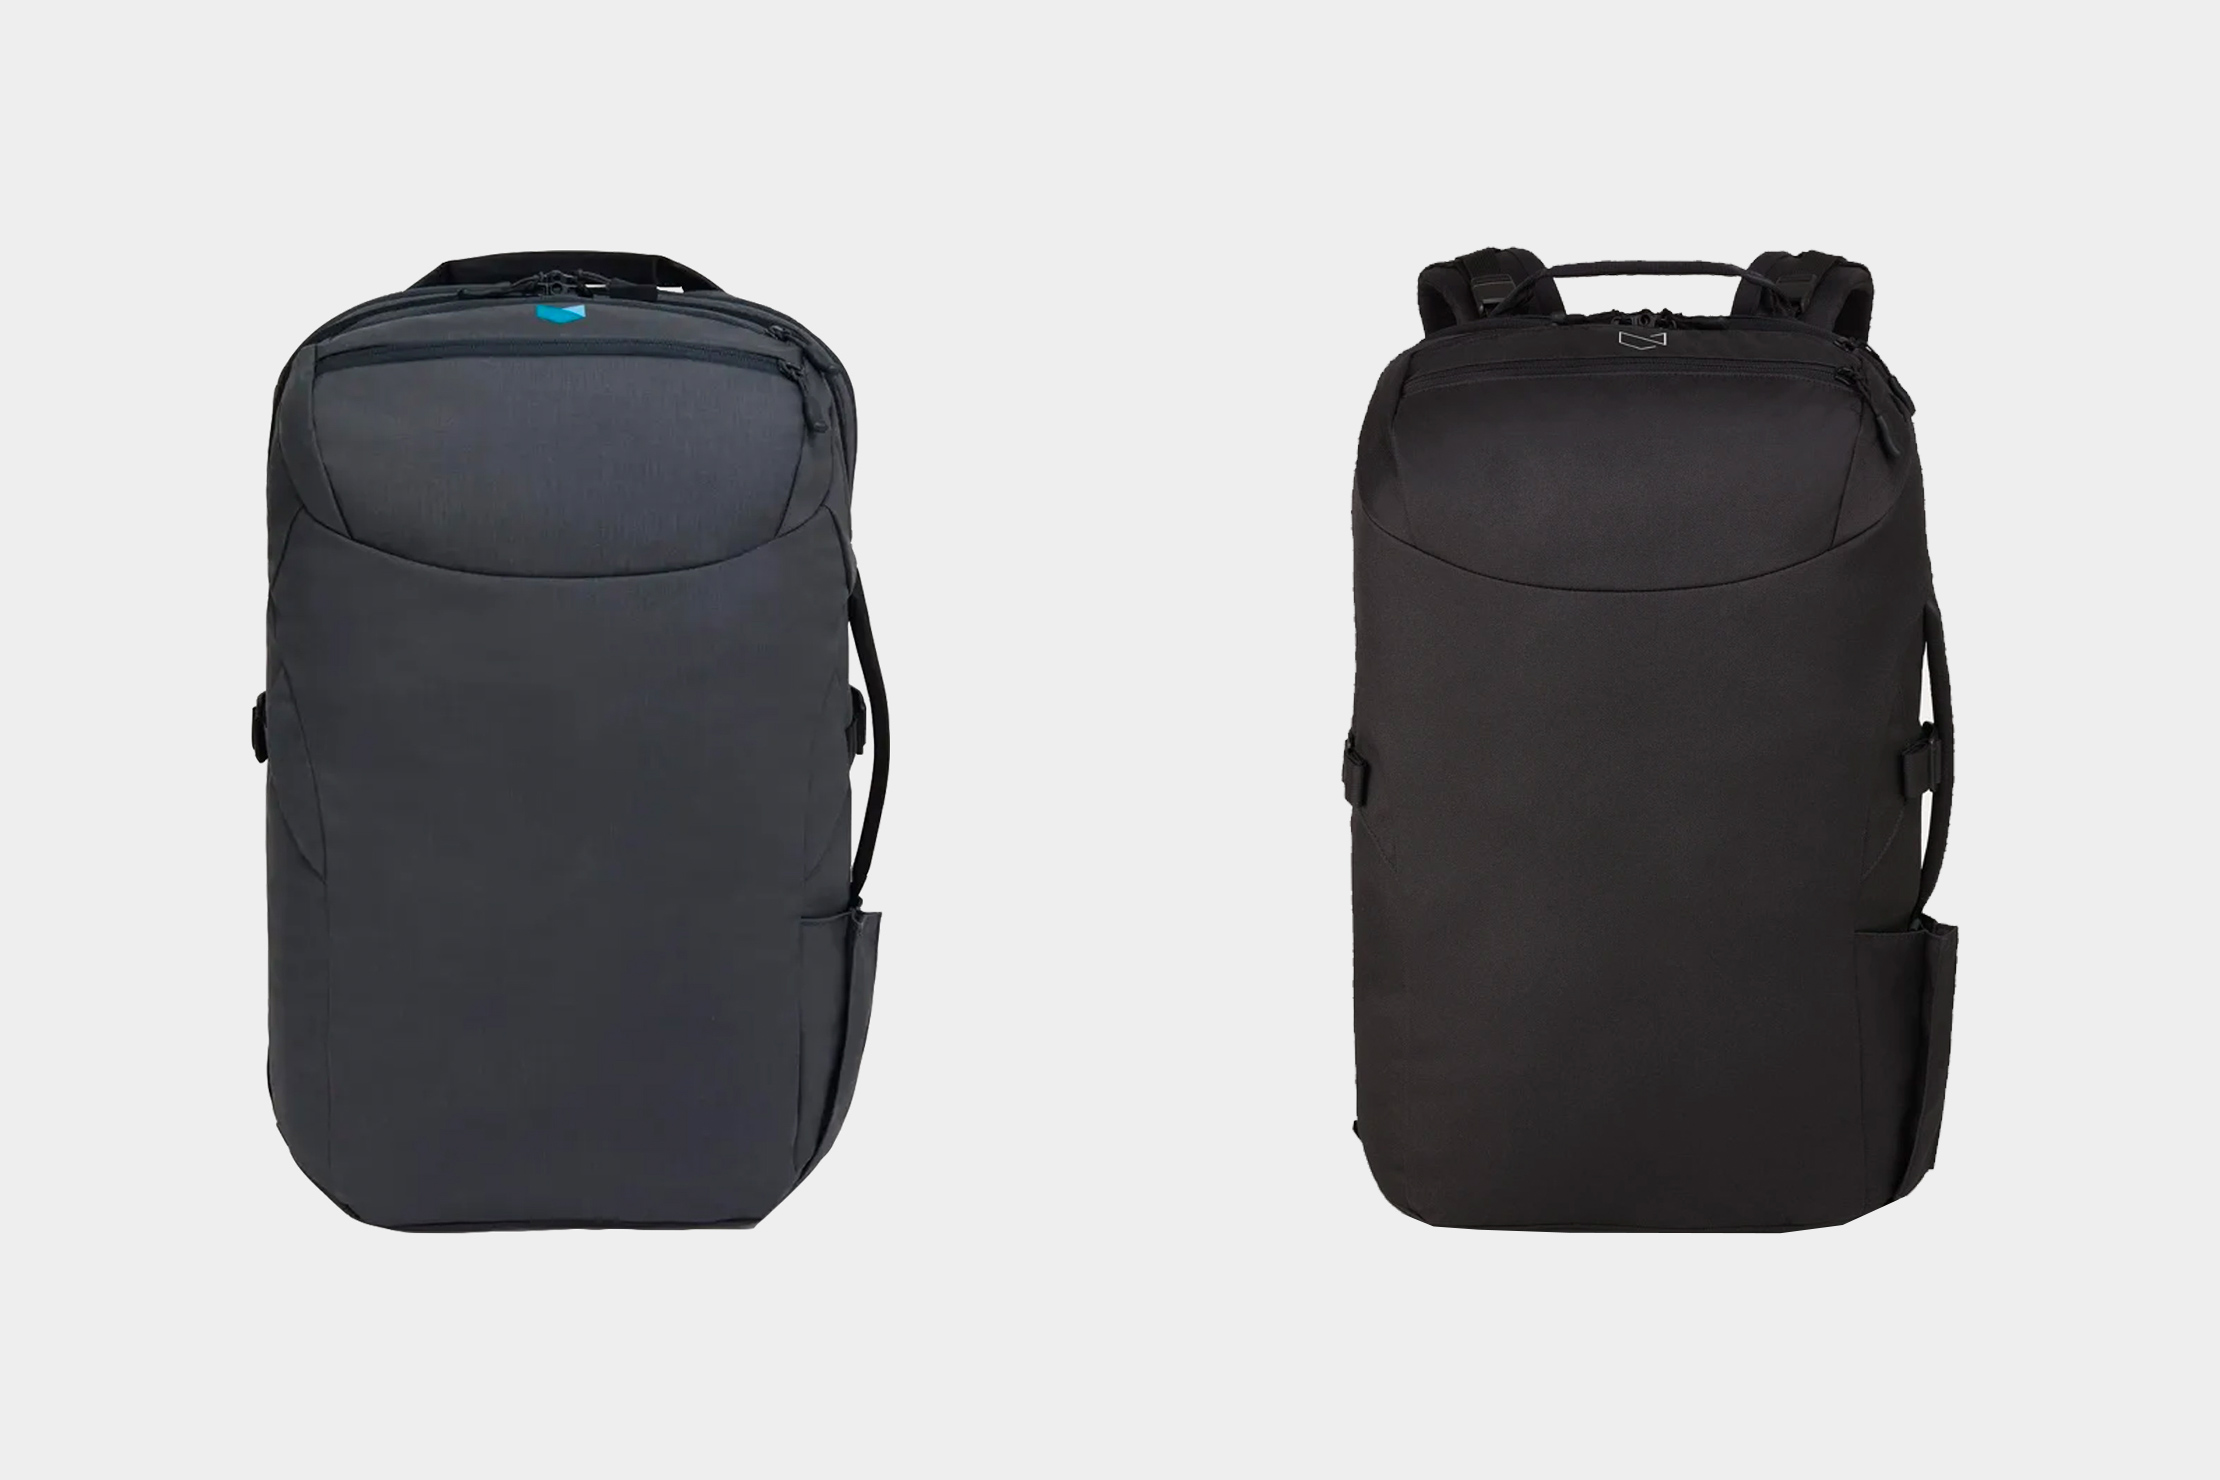 Minaal Carry-On 3.0 | Can you tell which is which? Hint: the logos are different